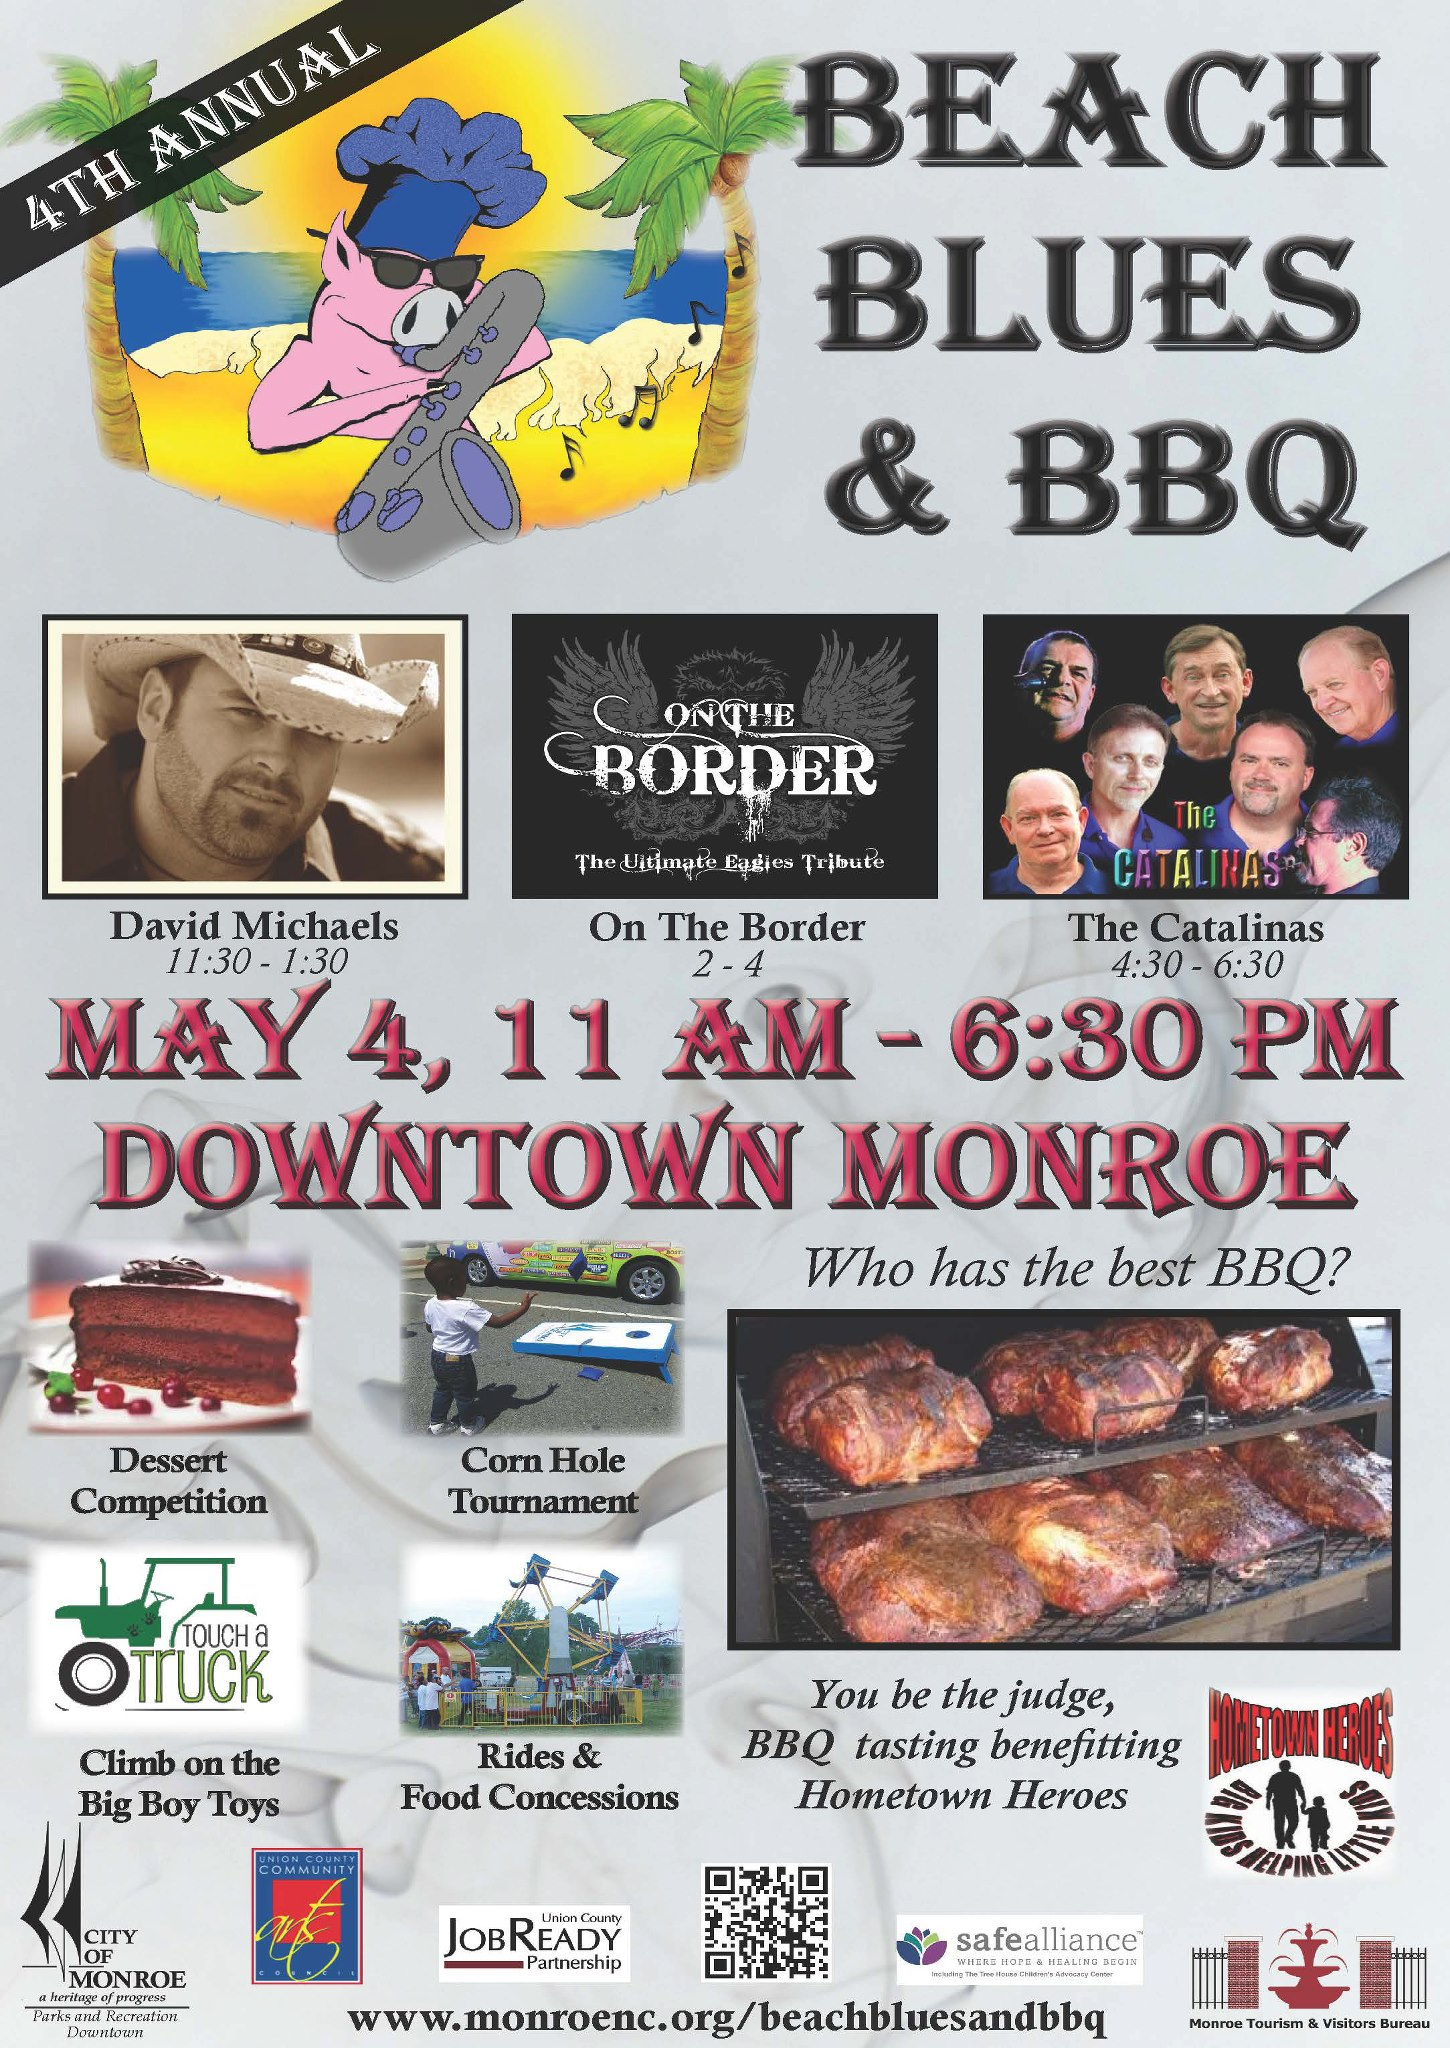 Tickets for the Beach, Blues, and BBQ Festival – Monroe, NC May 4th